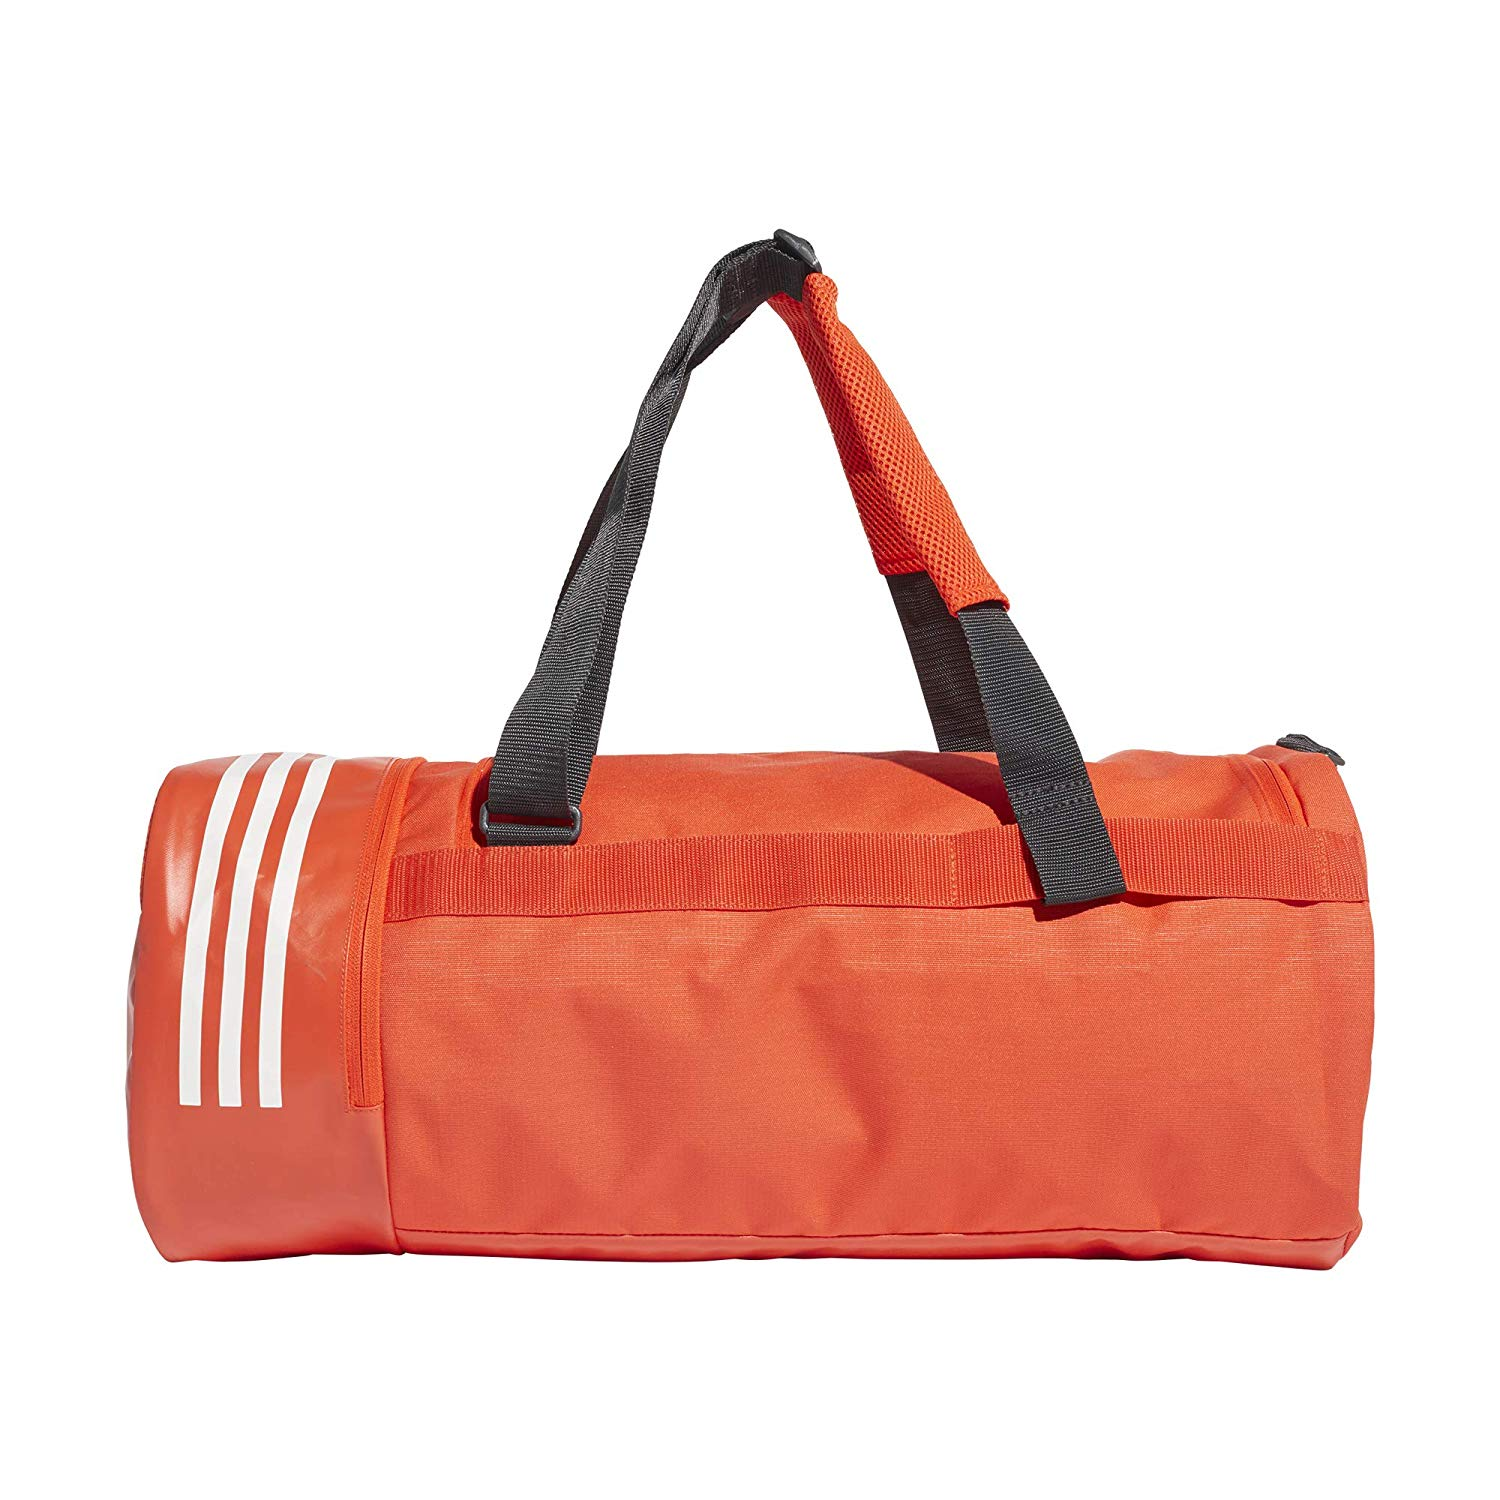 Adidas Performance Sports Bag Convertible 3 Stripes Duffle Bag M Orange DZ8694 | eBay